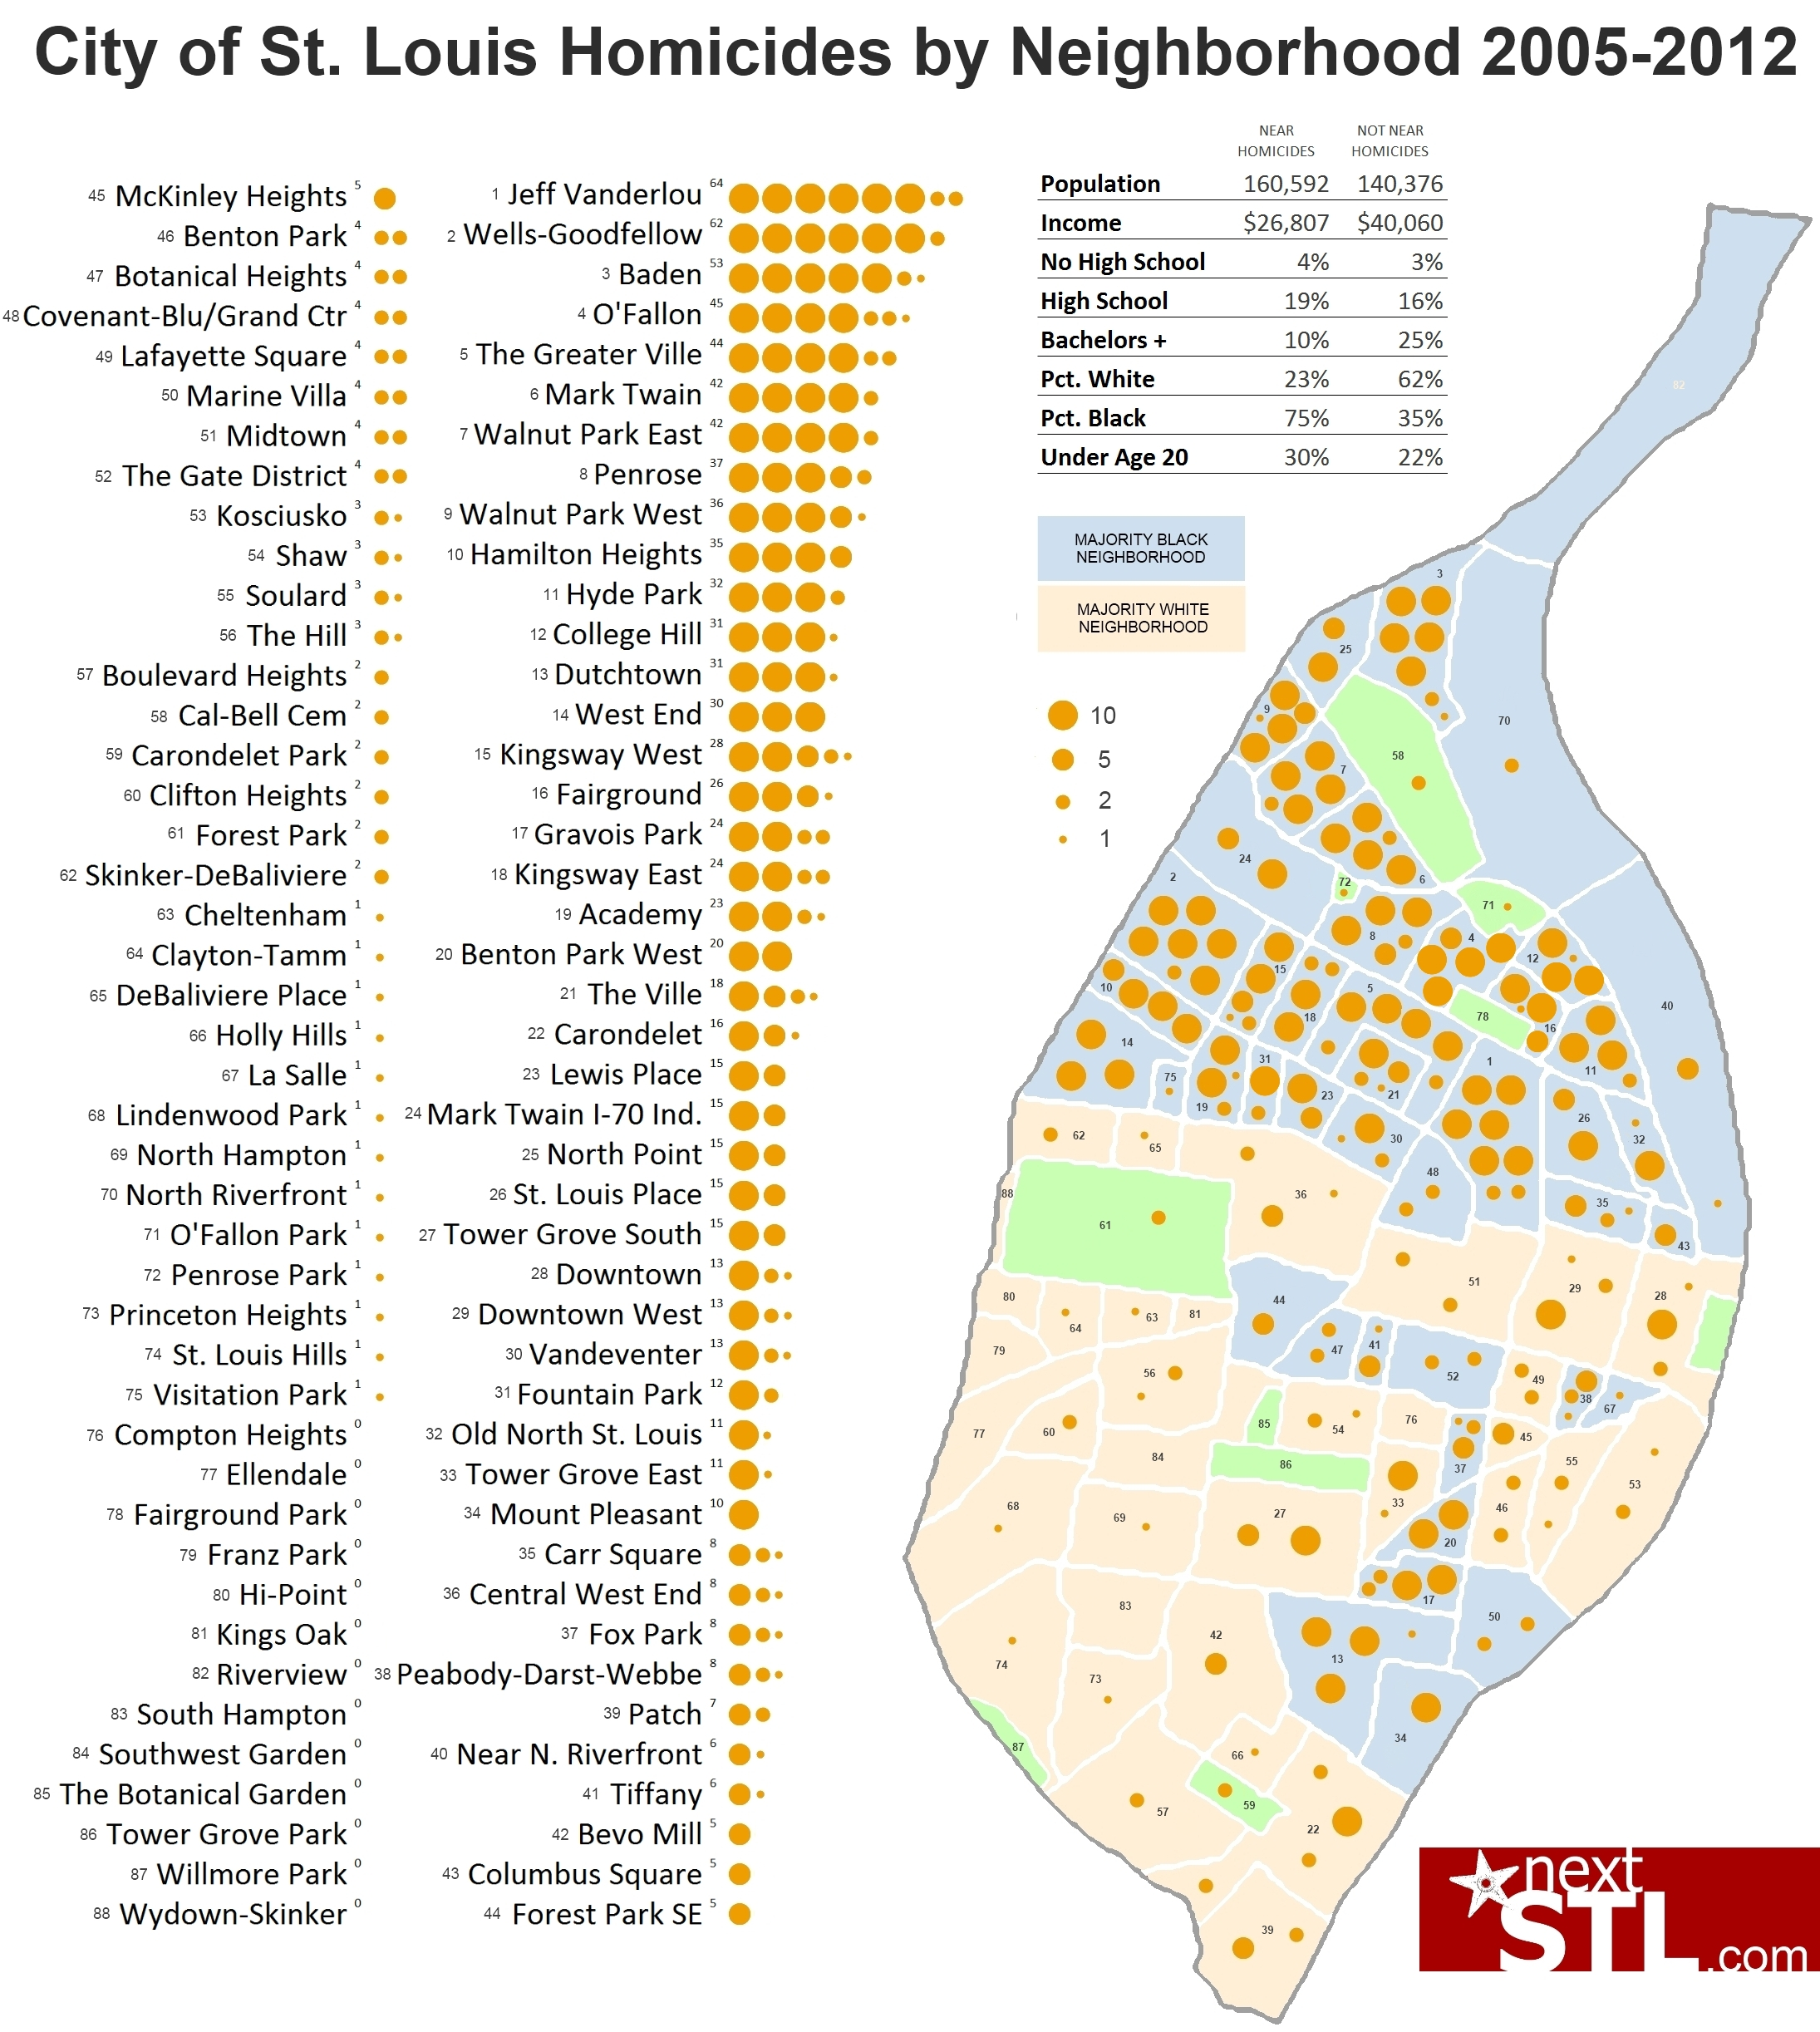 Understanding St. Louis: Homicides 2005-2012 - NextSTL on